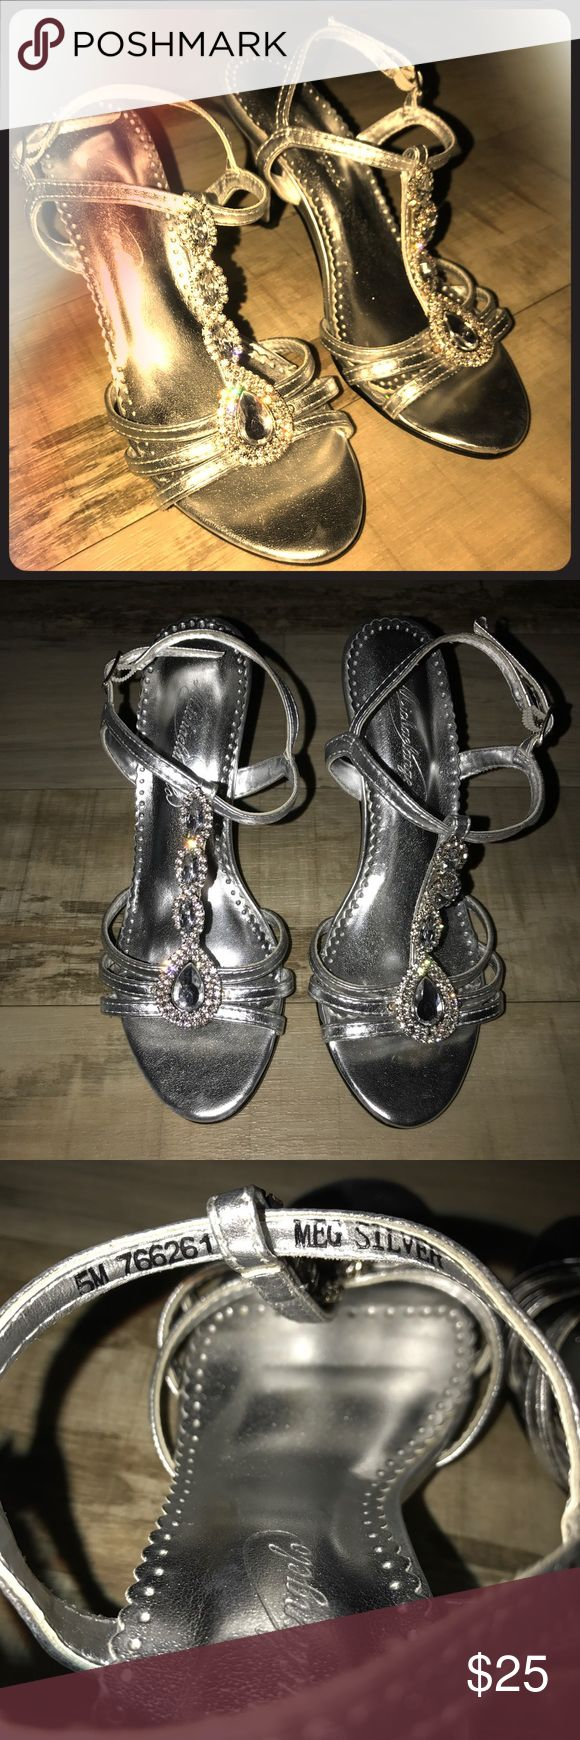 Michelangelo Silver Dress Heels W/ Jewels Bought straight from David's Bridals, these Michelangelo silver dress heels can dress up any solid gown/prom dress. They are in nearly perfect condition, and have only been worn once for an event. Pre-loved, comfortable and super easy to walk around in. I'm not a heel person, but these did not bother me AT ALL throughout the night or the day after. Michelangelo Shoes Heels